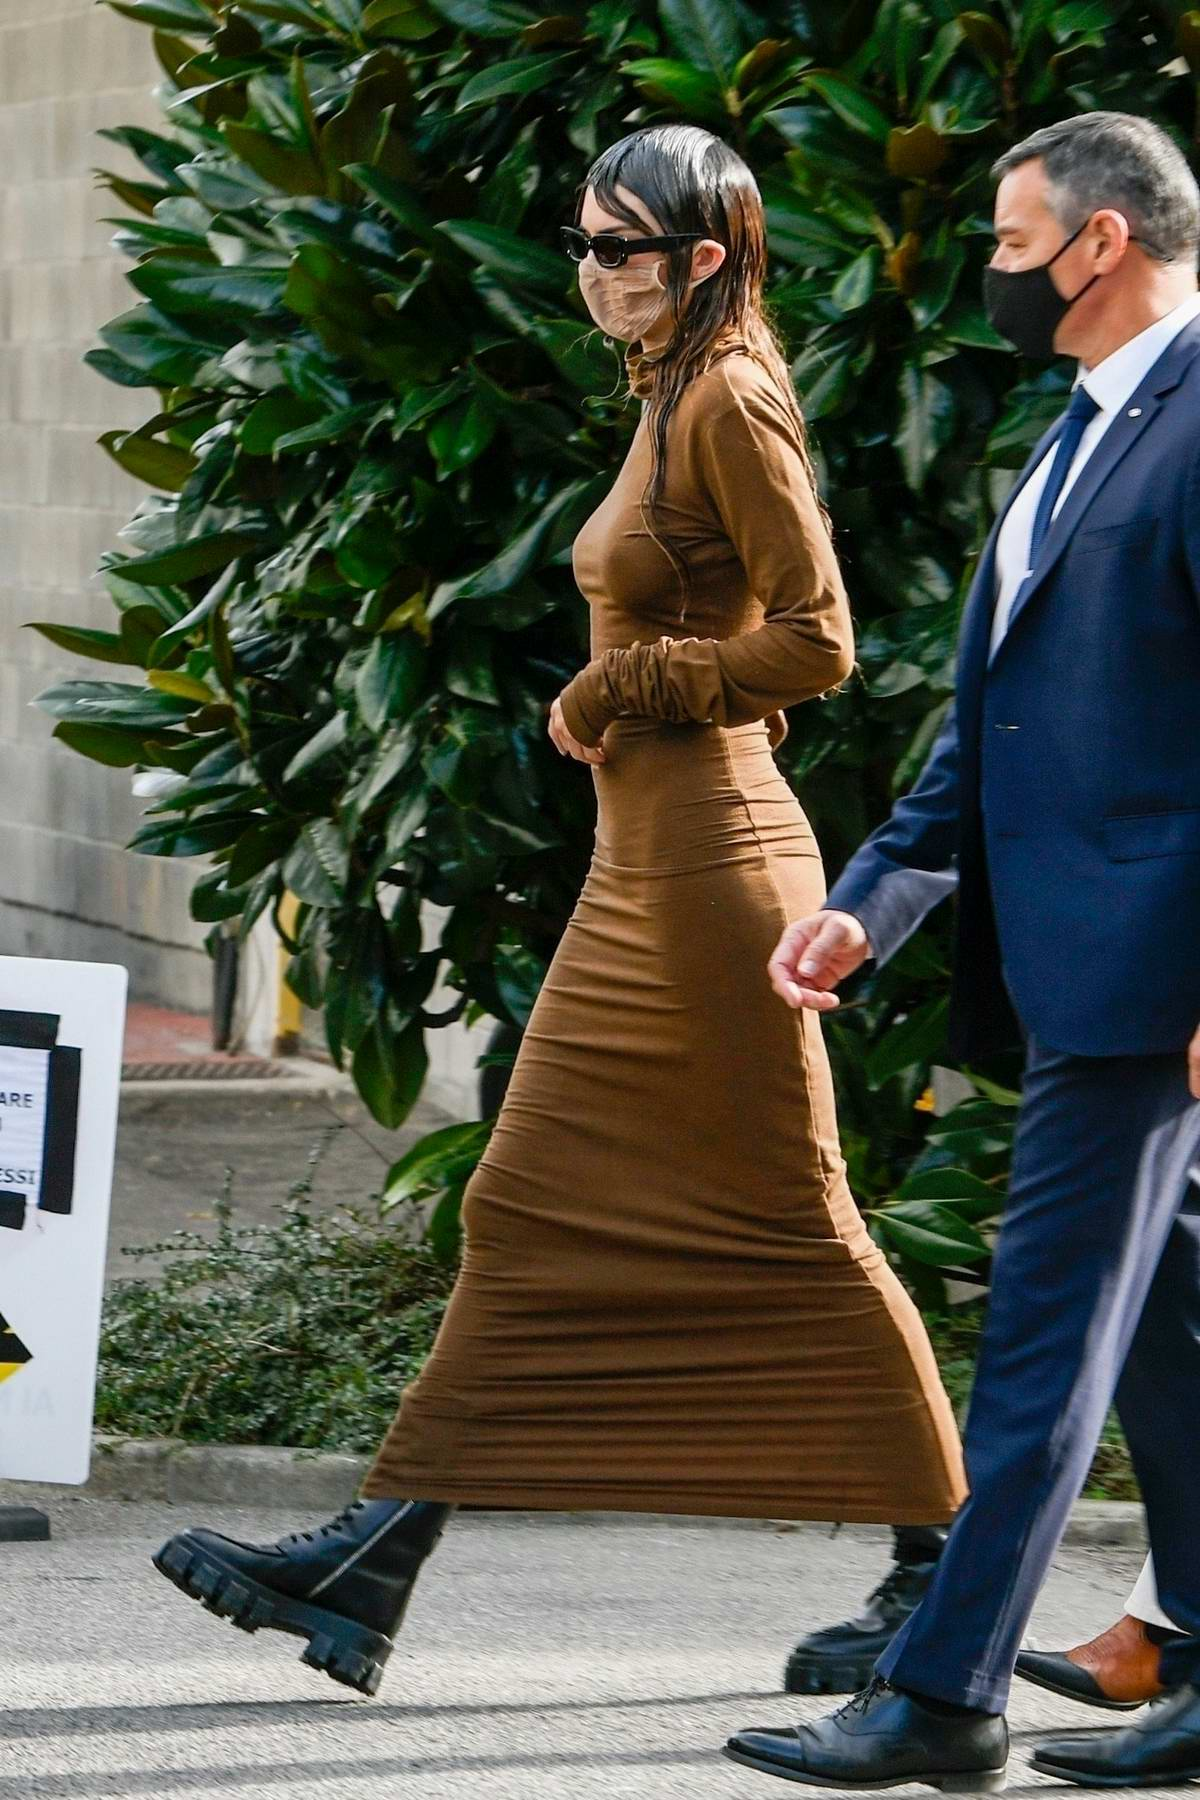 Kendall Jenner dons a form-fitting brown dress as she leaves a Versace fitting during Milan Fashion Week in Milan, Italy